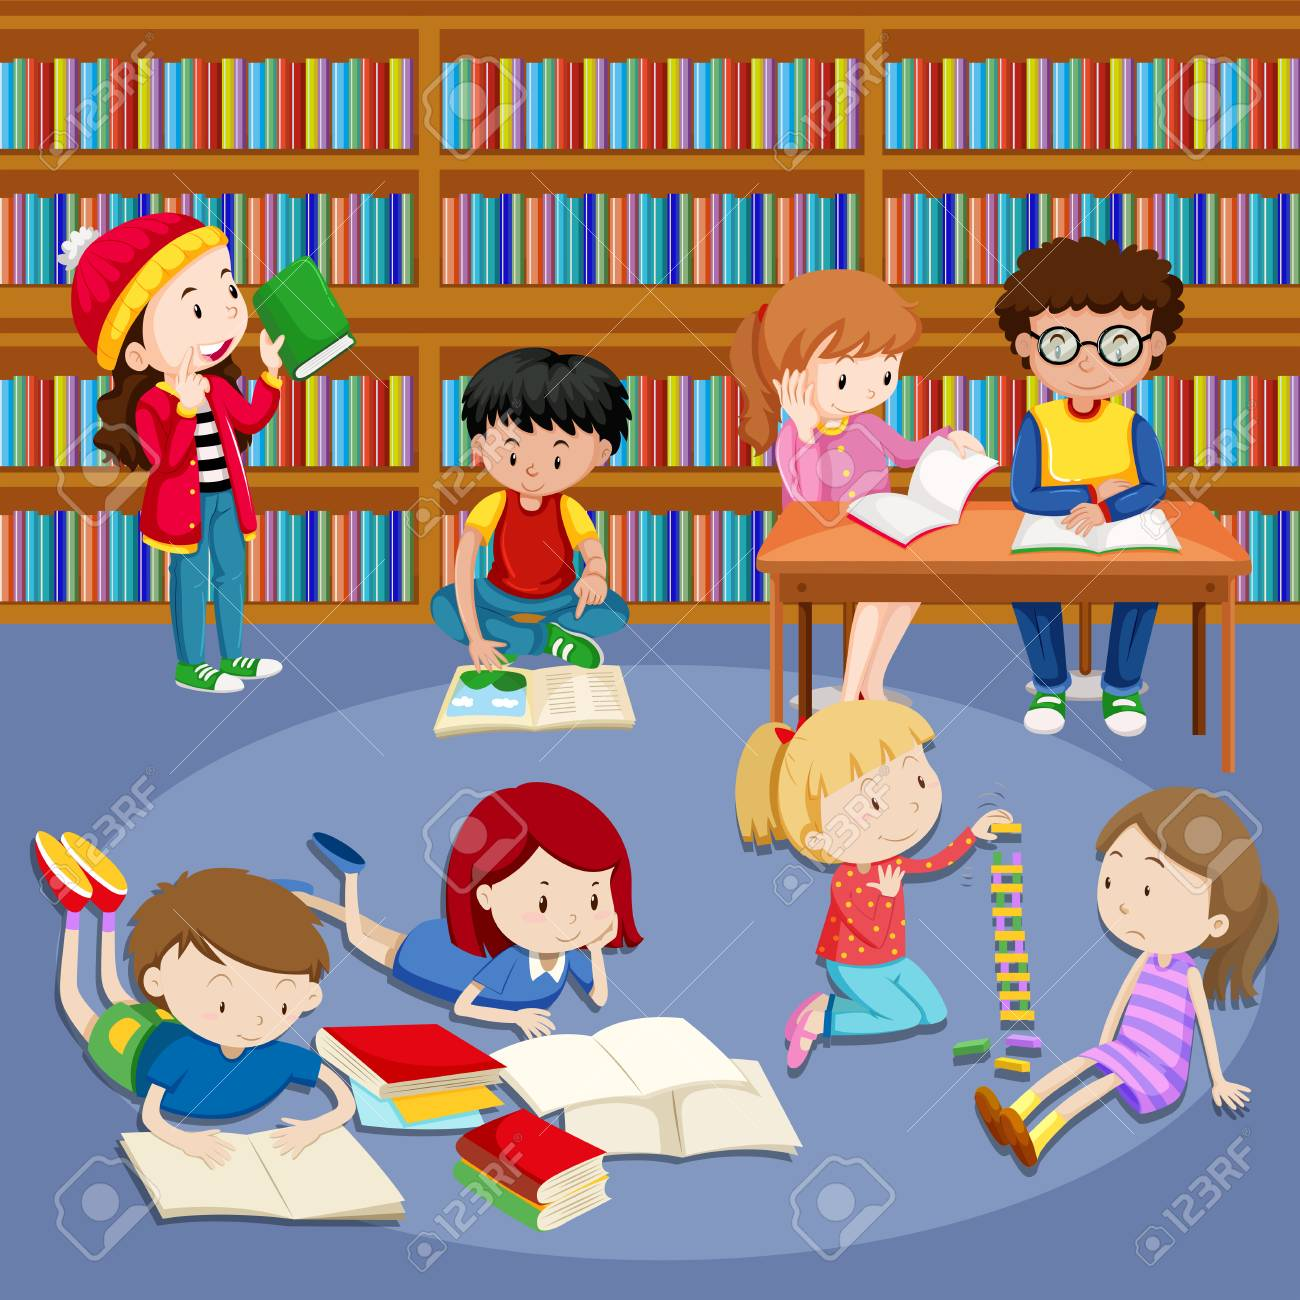 Many kids reading books in library illustration.